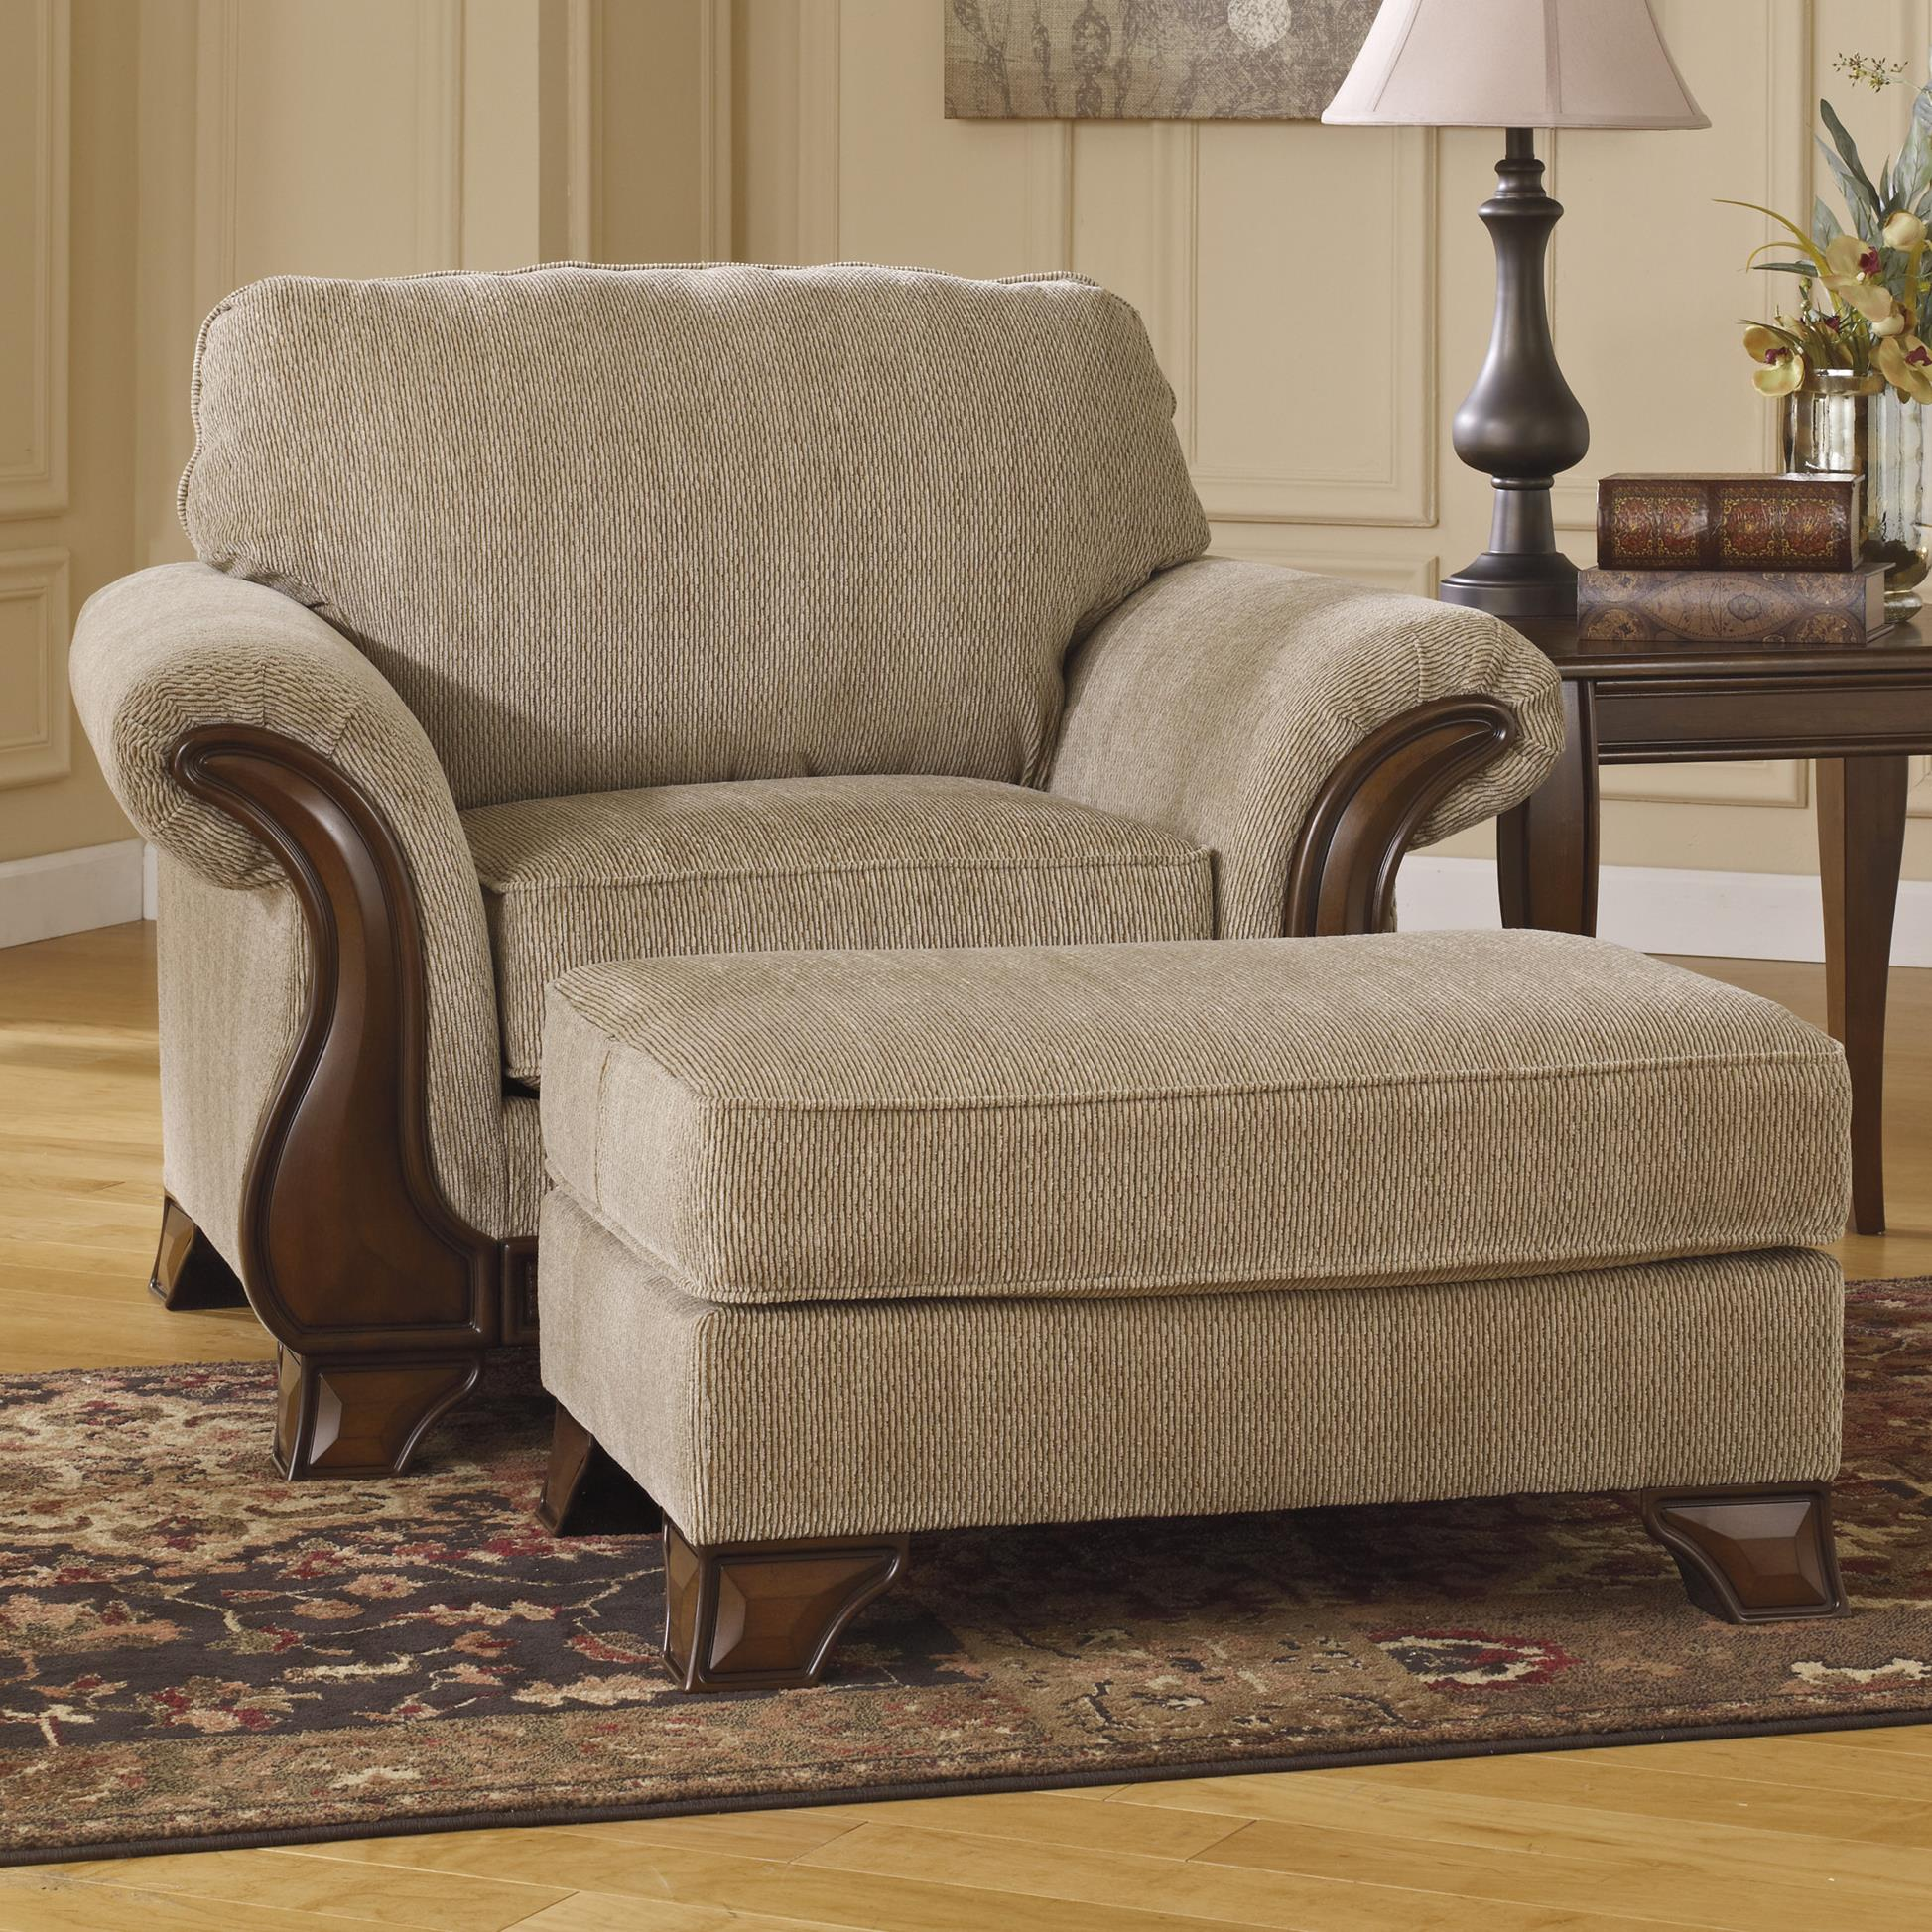 Chair U0026 Ottoman With Exposed Wood Accents